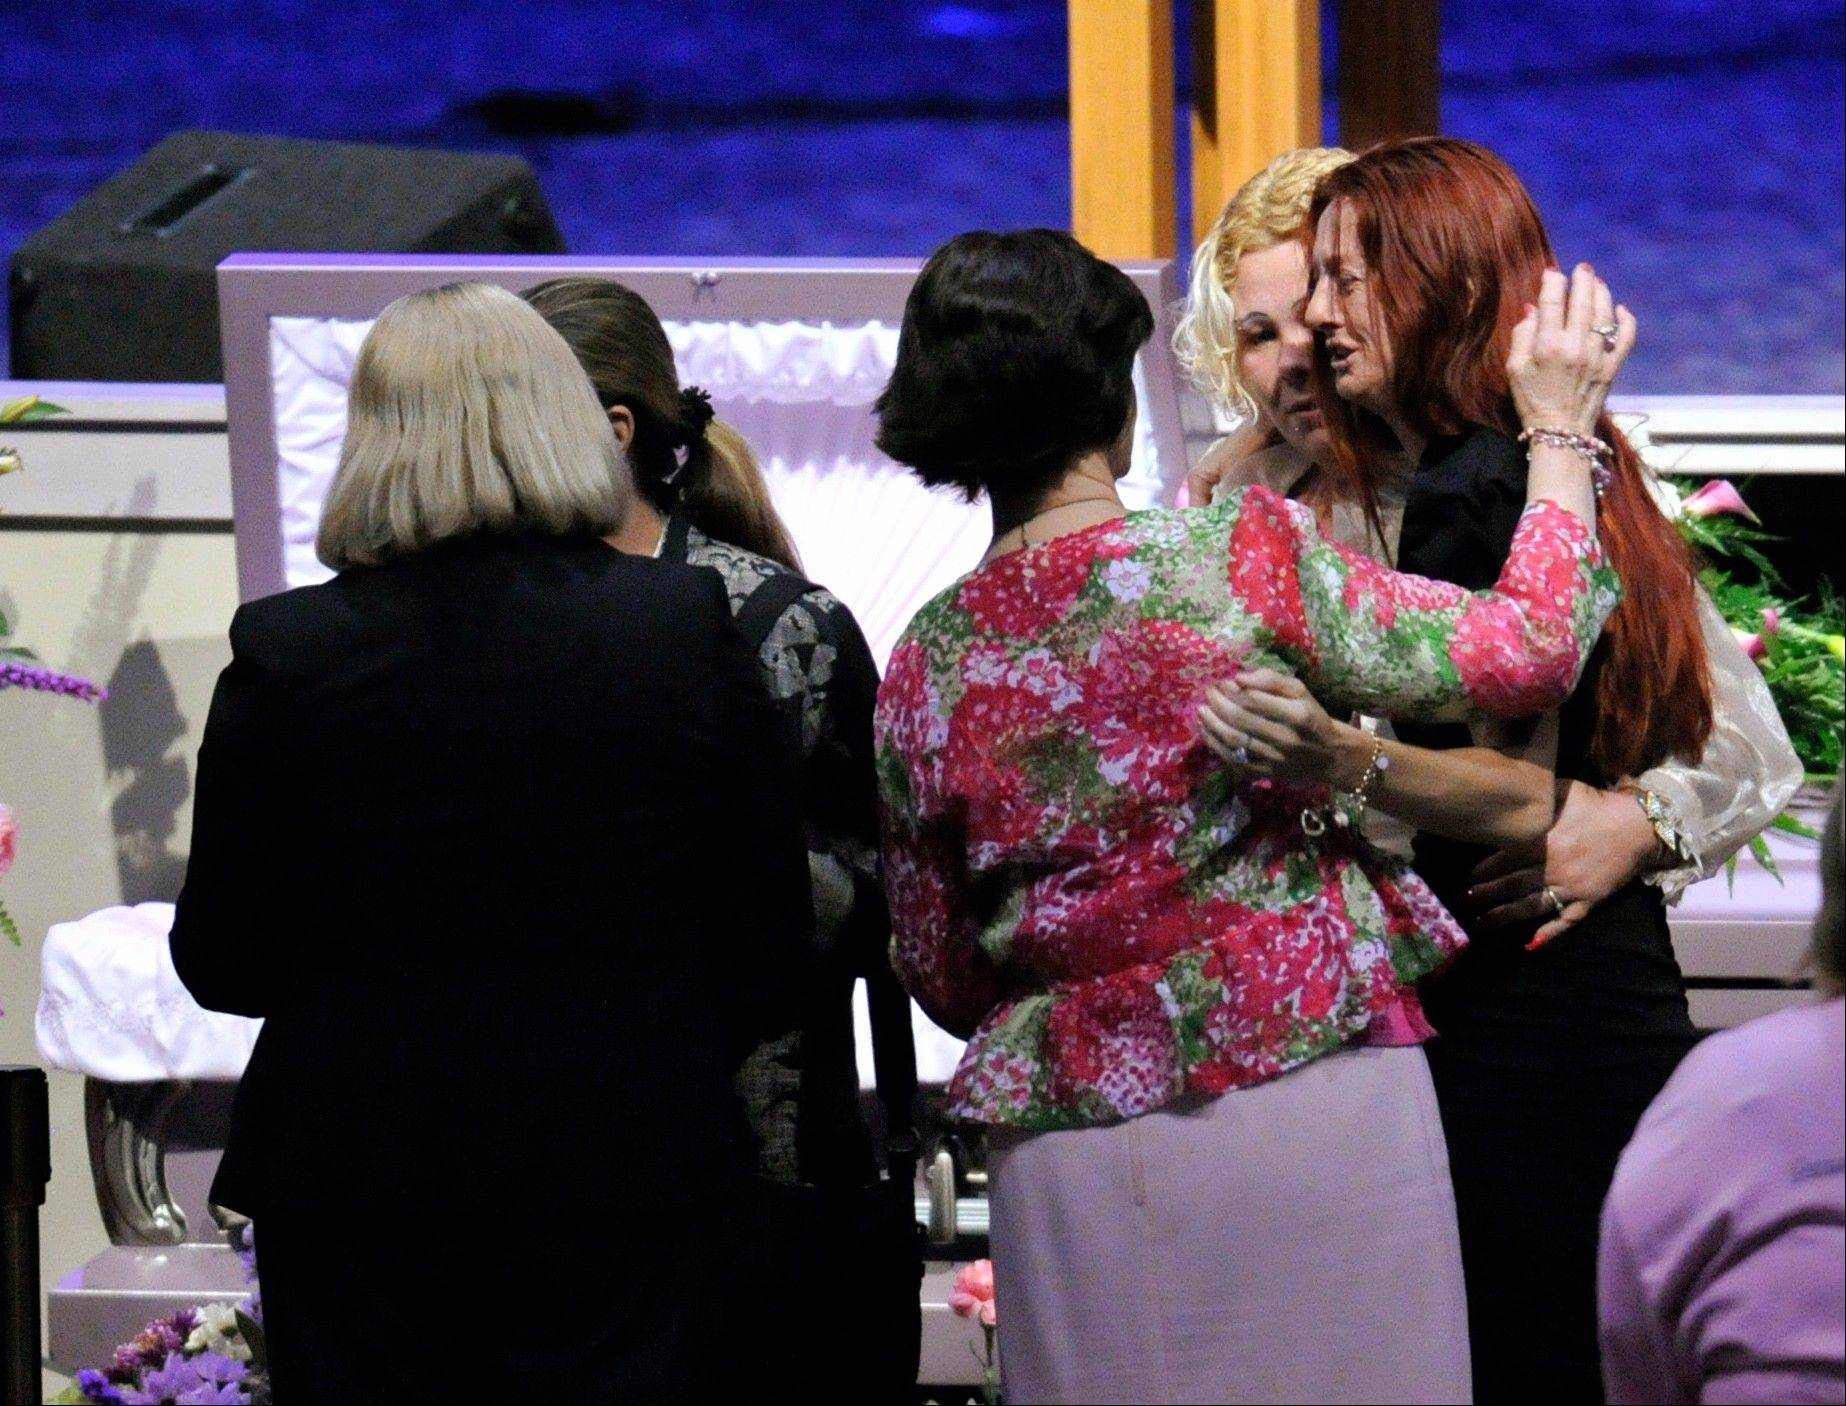 Rayne Perrywinkle, right, is consoled at the casket of her daughter, 8-year-old Cherish Perrywinkle, at Paxon Revival Center Church on Thursday, June 27, 2013 in Jacksonville, Fla. Cherish, who police say was targeted by a registered sex offender, was abducted and killed last Friday.